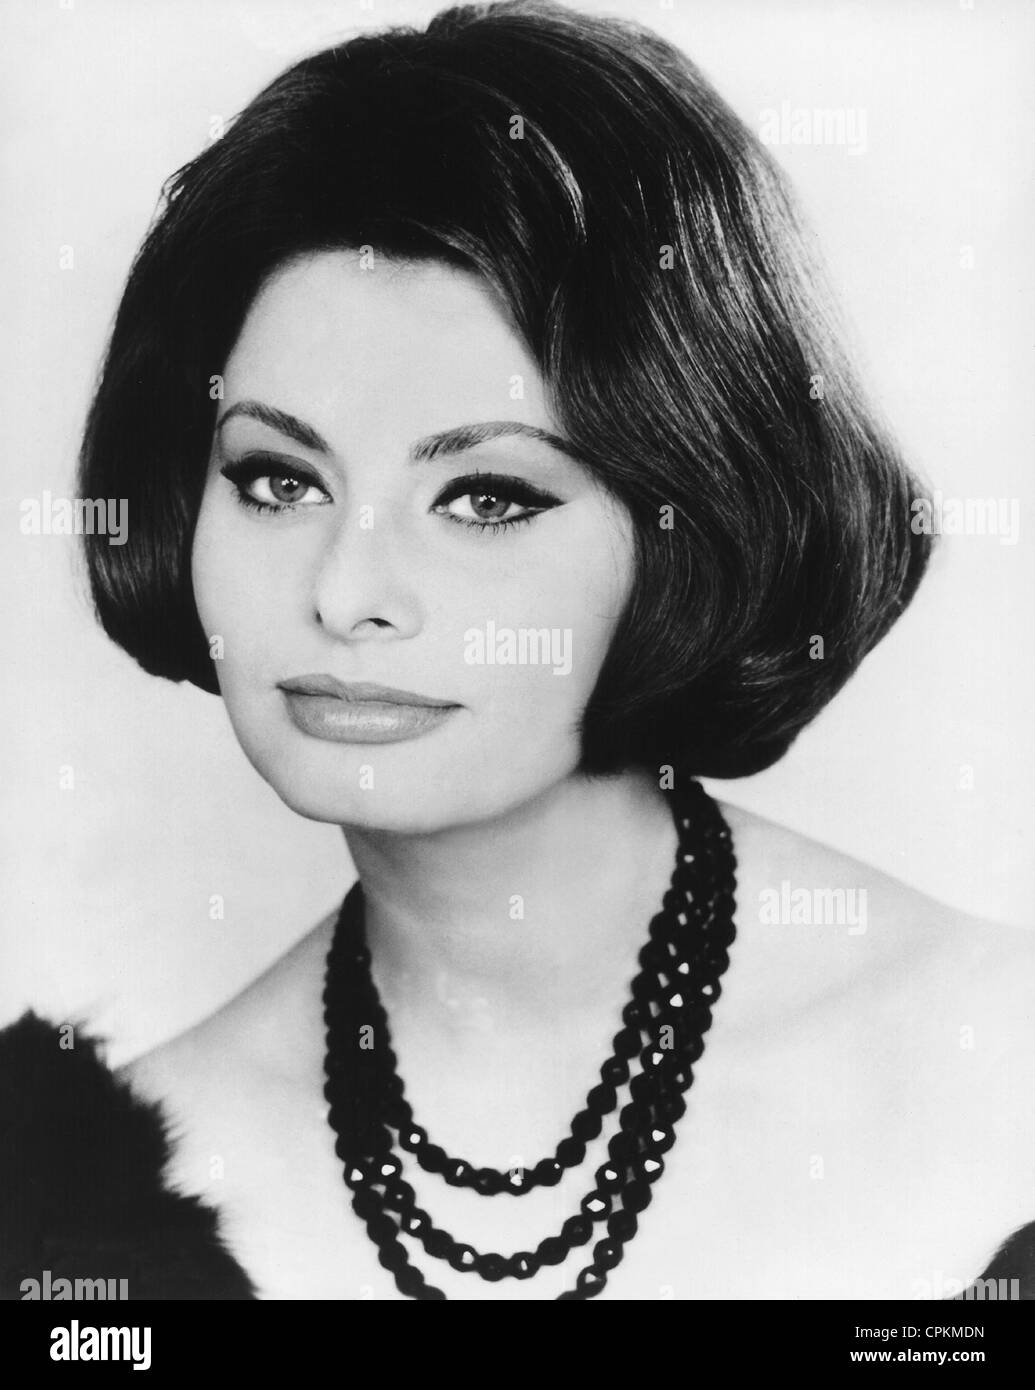 A black and white portrait of the film star Sophia Loren pictured in Los Angeles in 1956 - Stock Image